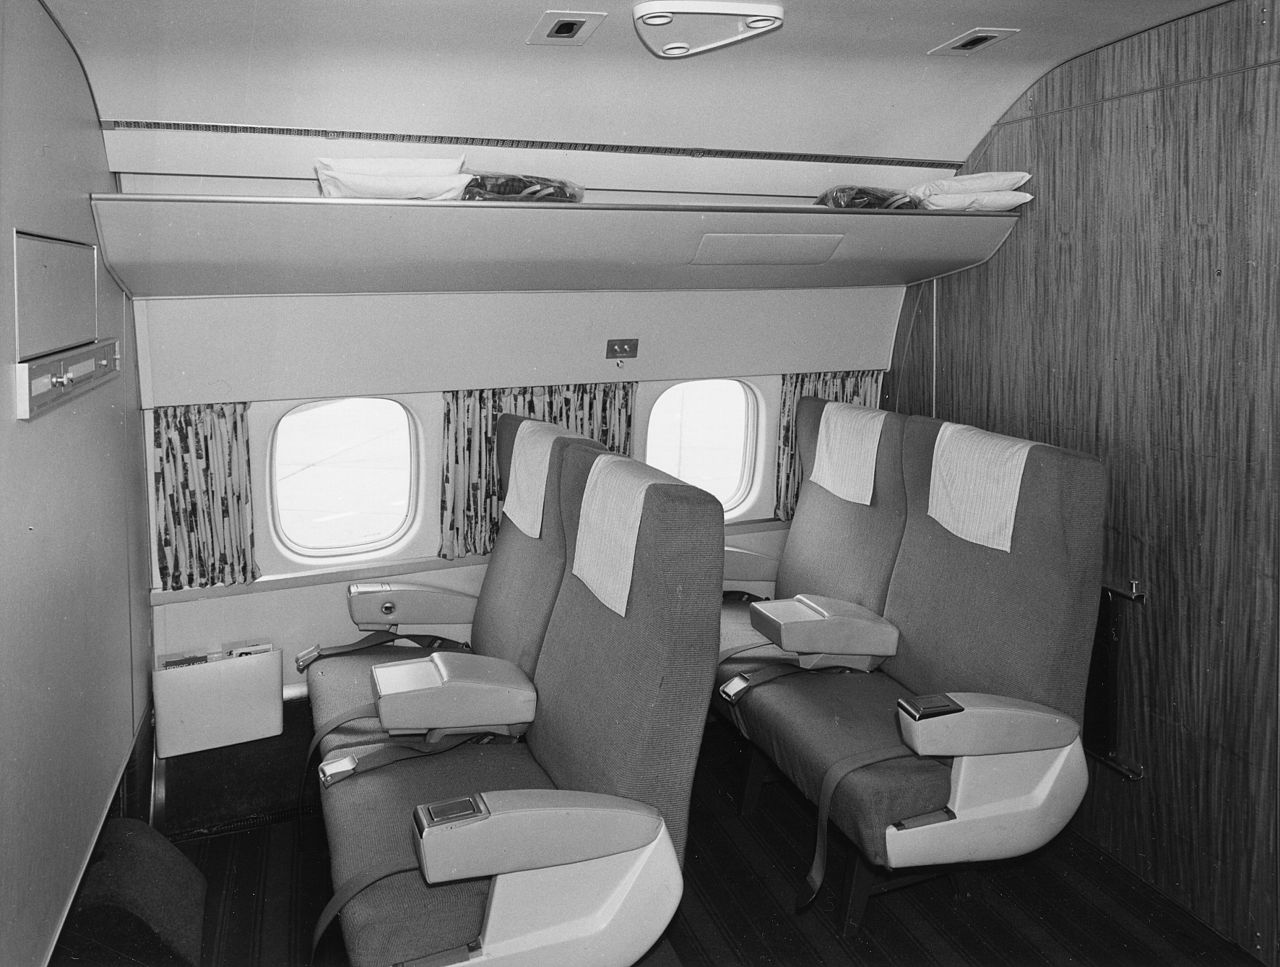 Scandinavian Interior File:sas Dc-8-33 Interior And Design Before Delivery